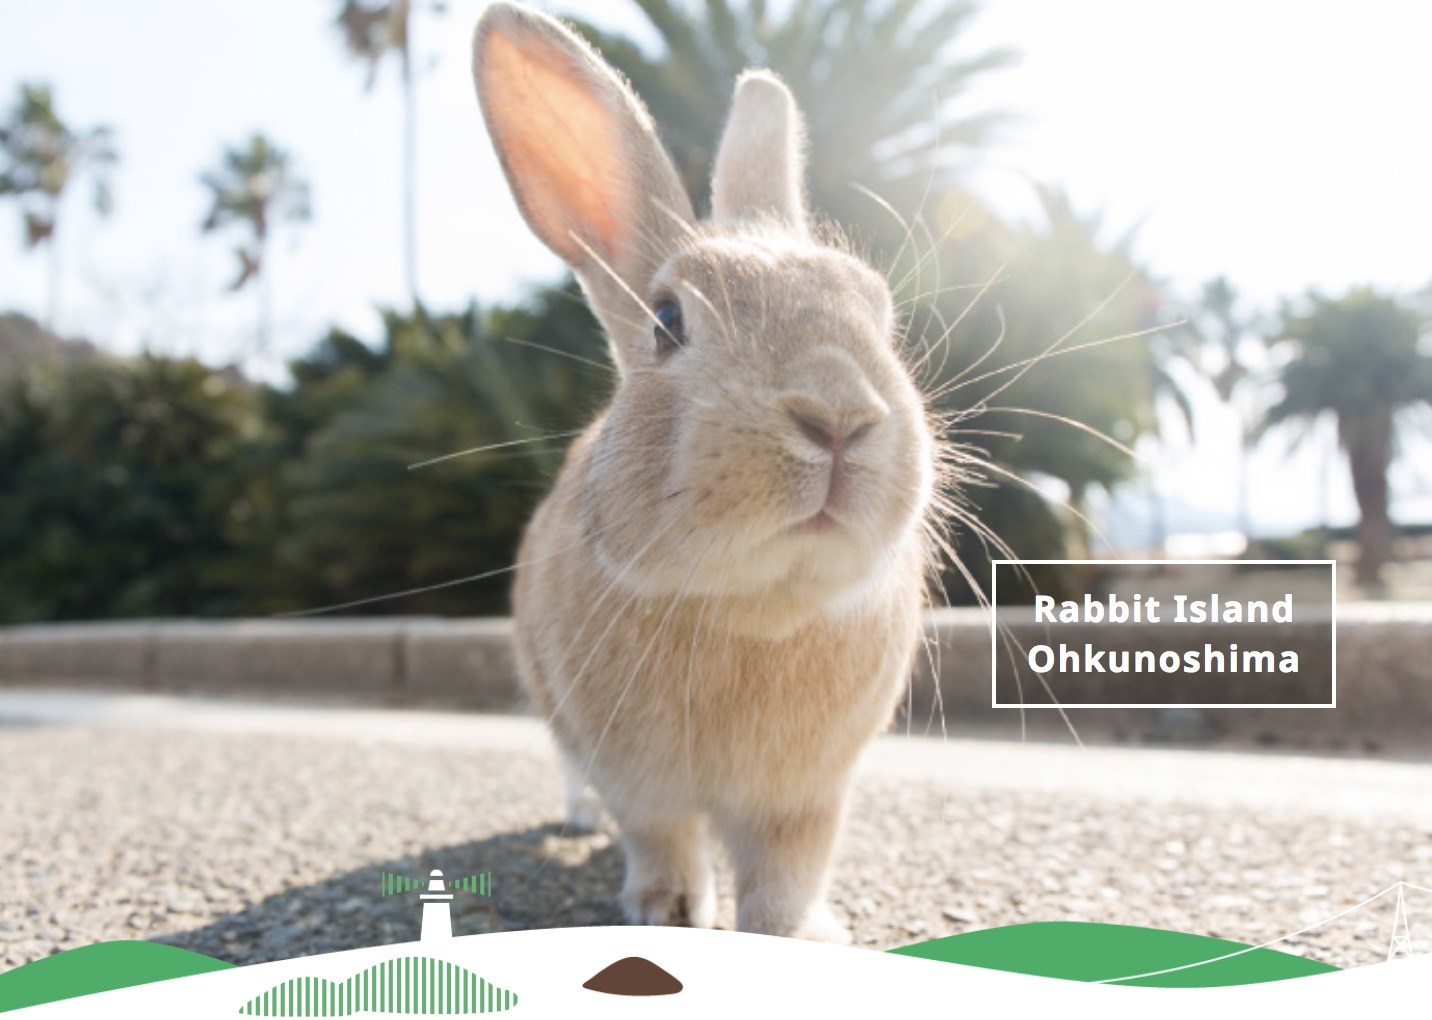 Rabbit Island Ohkunoshima Rabbit Island Ohkunoshima – What Is Ohkunoshima?